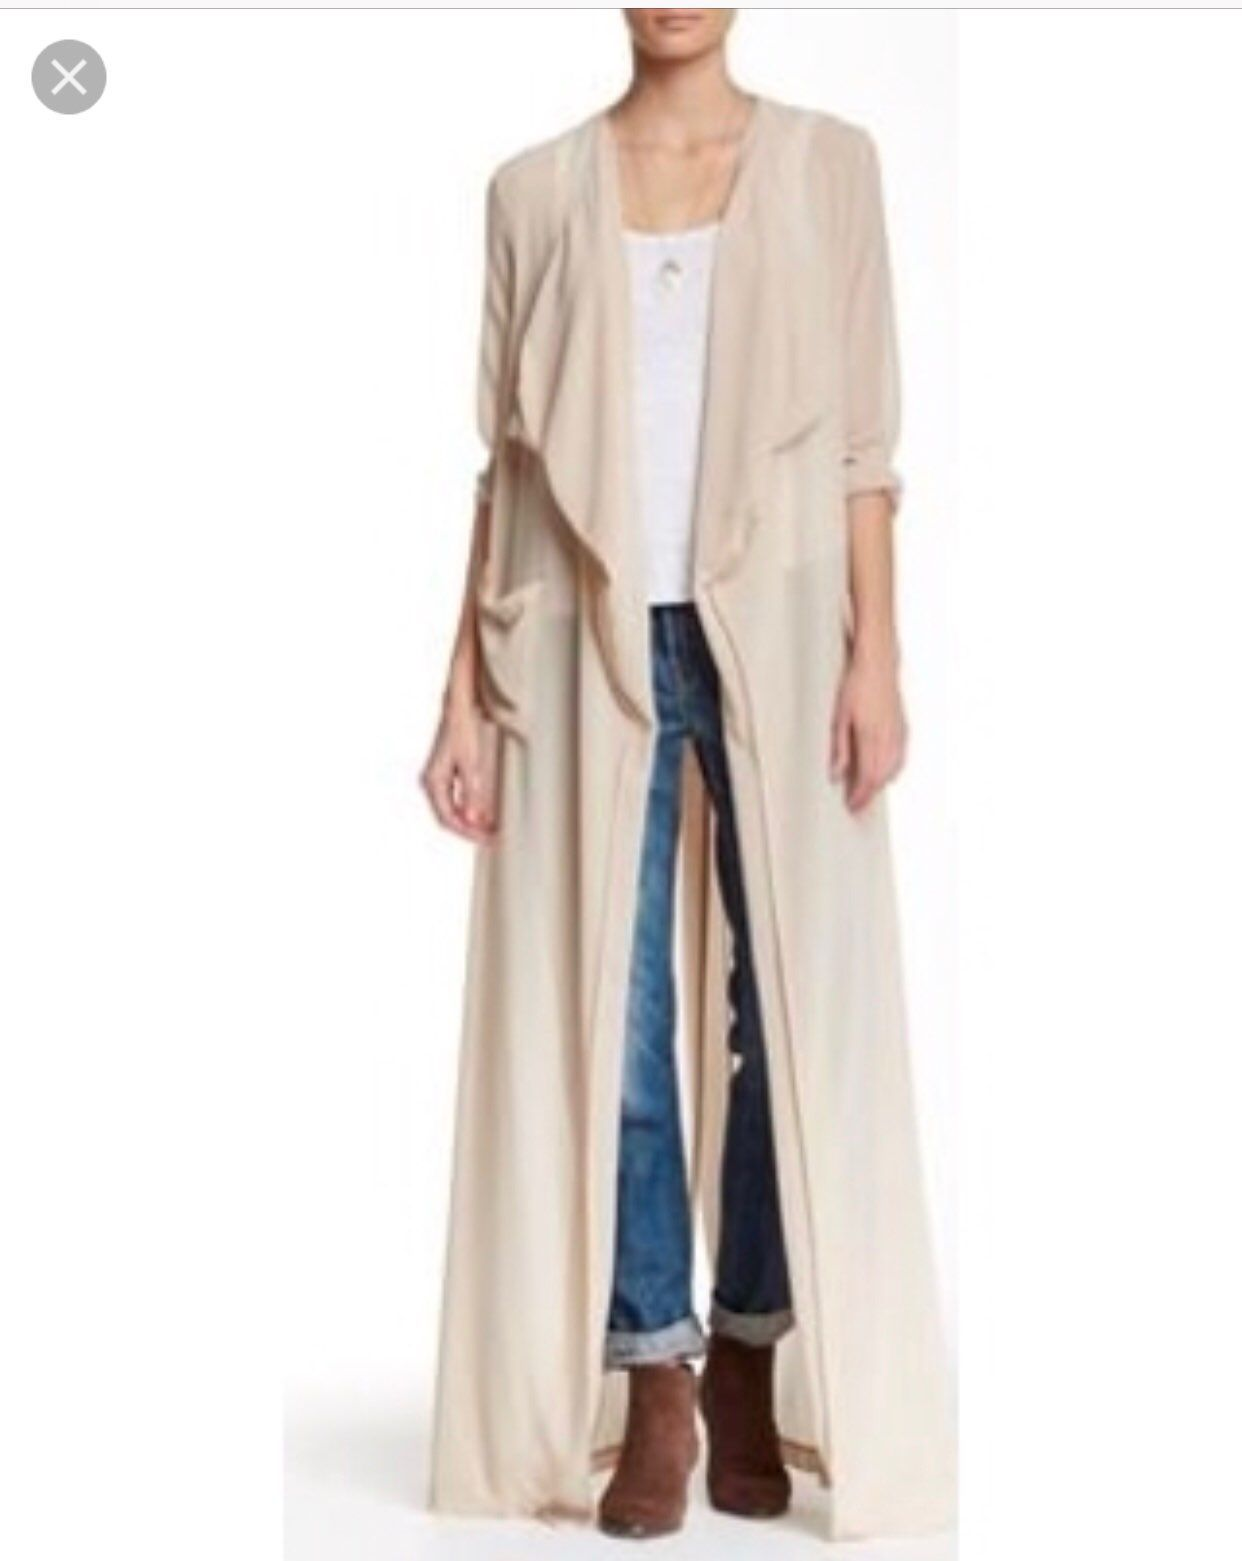 Beige/nude Sheer Cardigan/duster - Mercari: BUY & SELL THINGS YOU LOVE